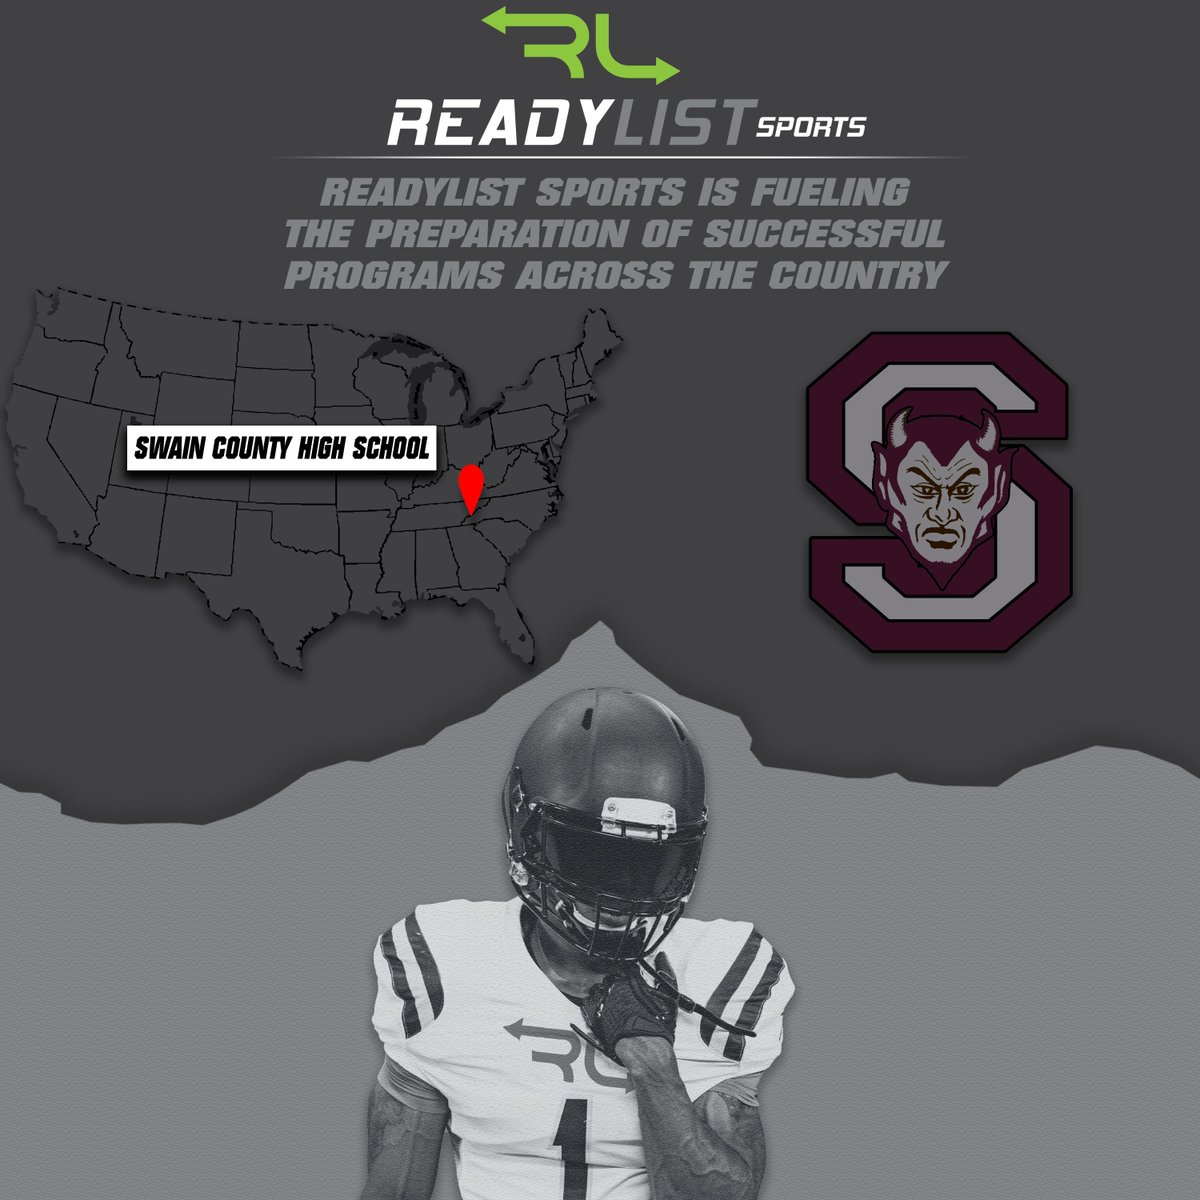 Swain County High School out of North Carolina will have a distinct advantage for the 2020 season. Using our playbook tool and learning platform will be huge for the Maroon Devils. @SwainFootball #Getinyourplaybook #Football https://t.co/NXY6V02UJh